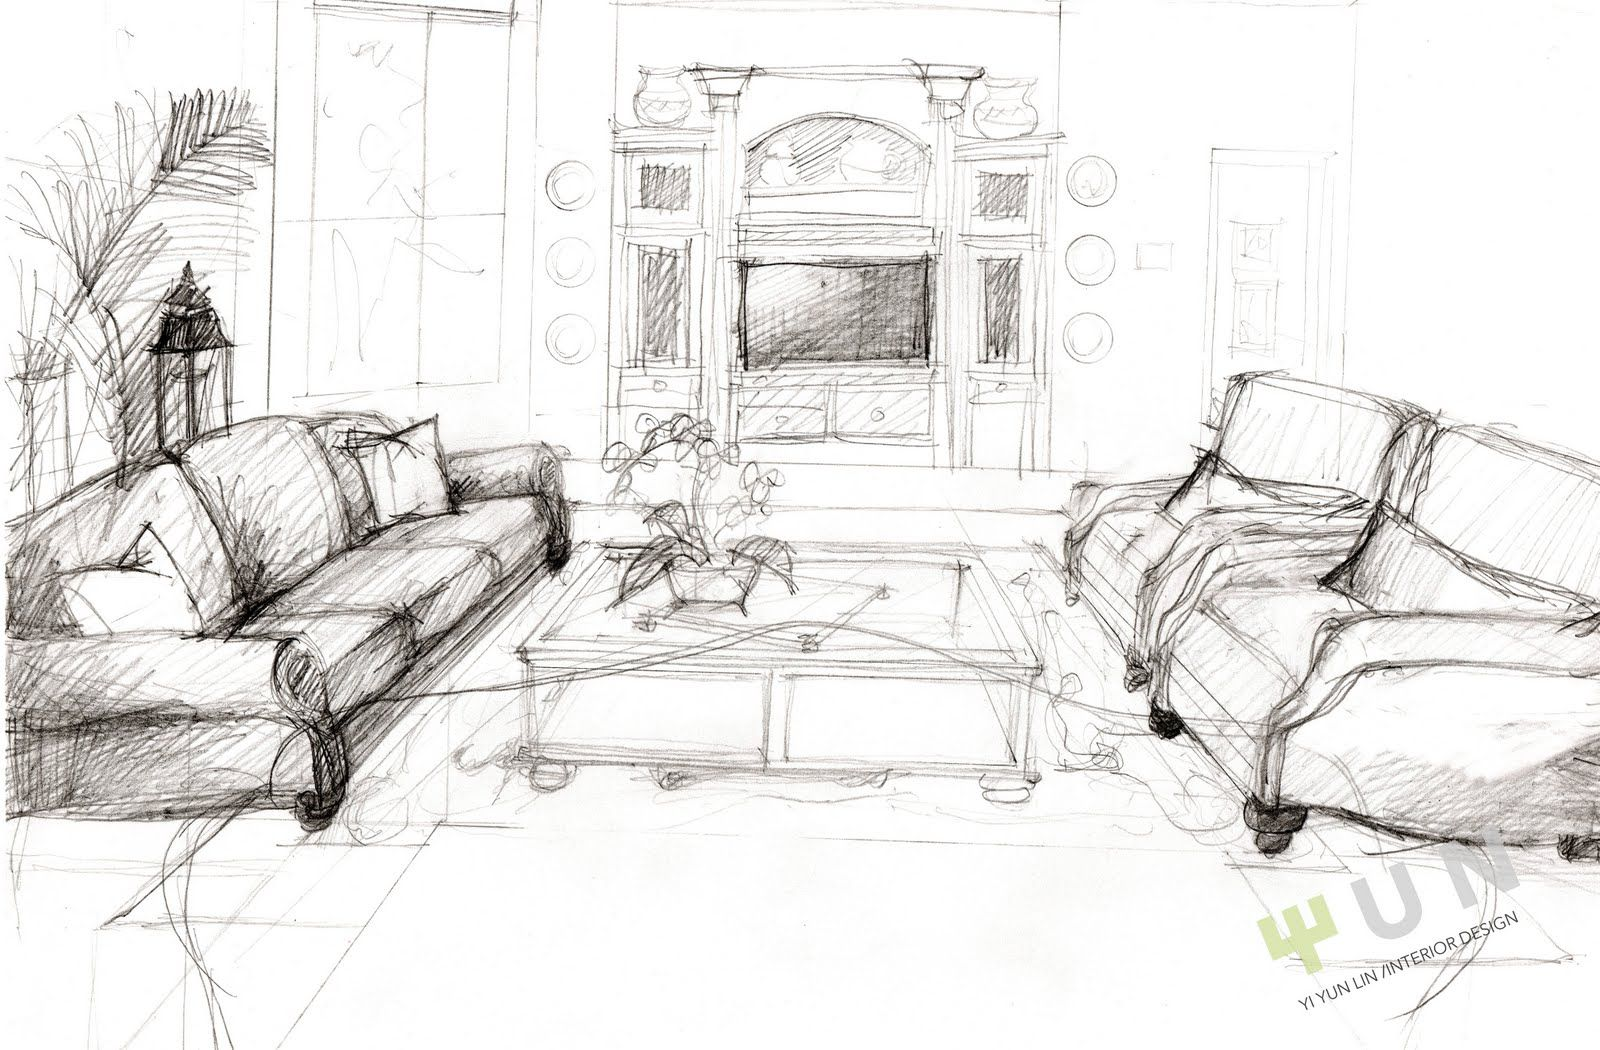 Floor Plan For The Family Room Design Sketch For The Family